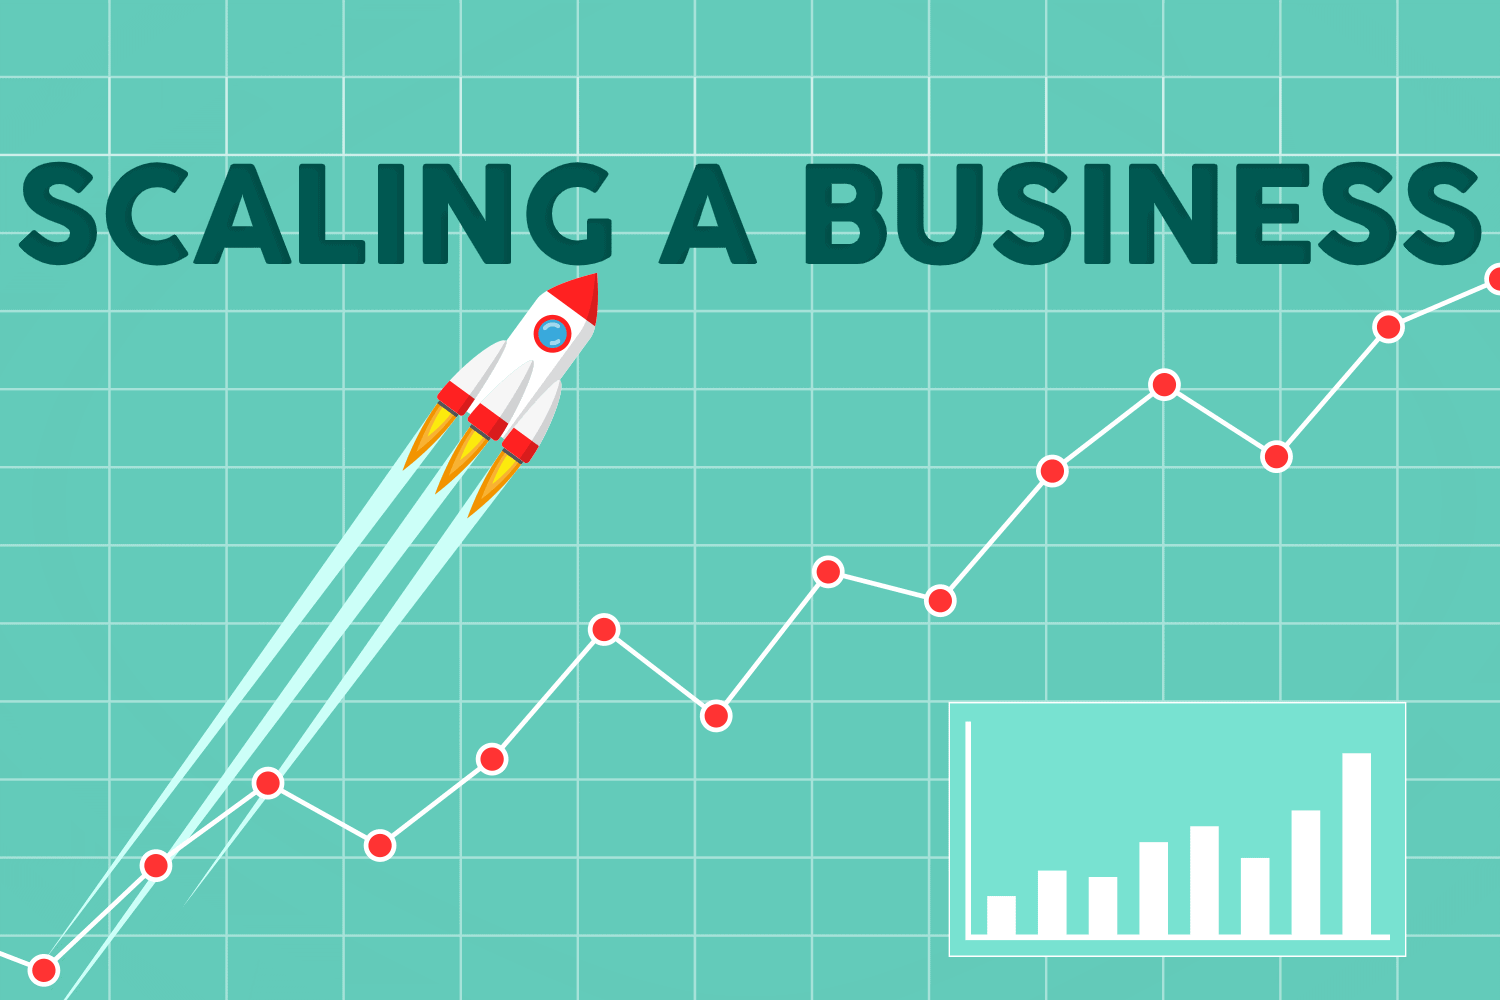 Scaling of your business operations